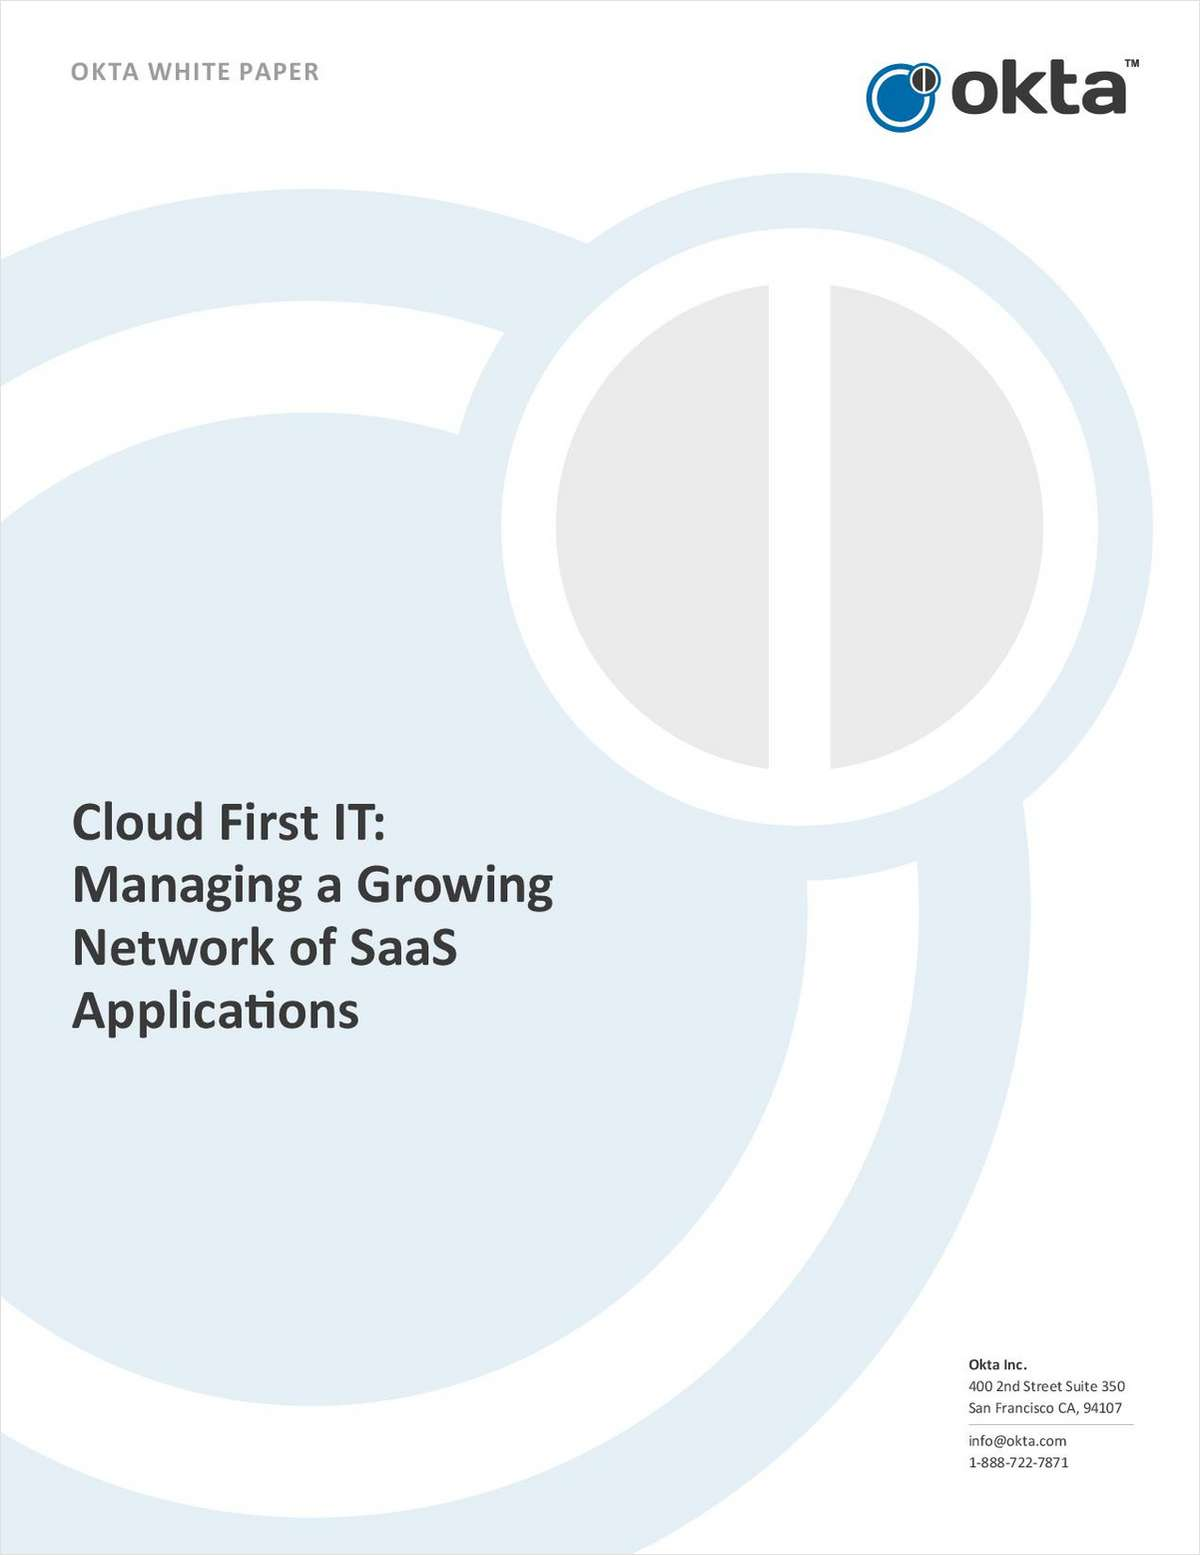 Cloud First IT: Managing a Growing Network of SaaS Applications